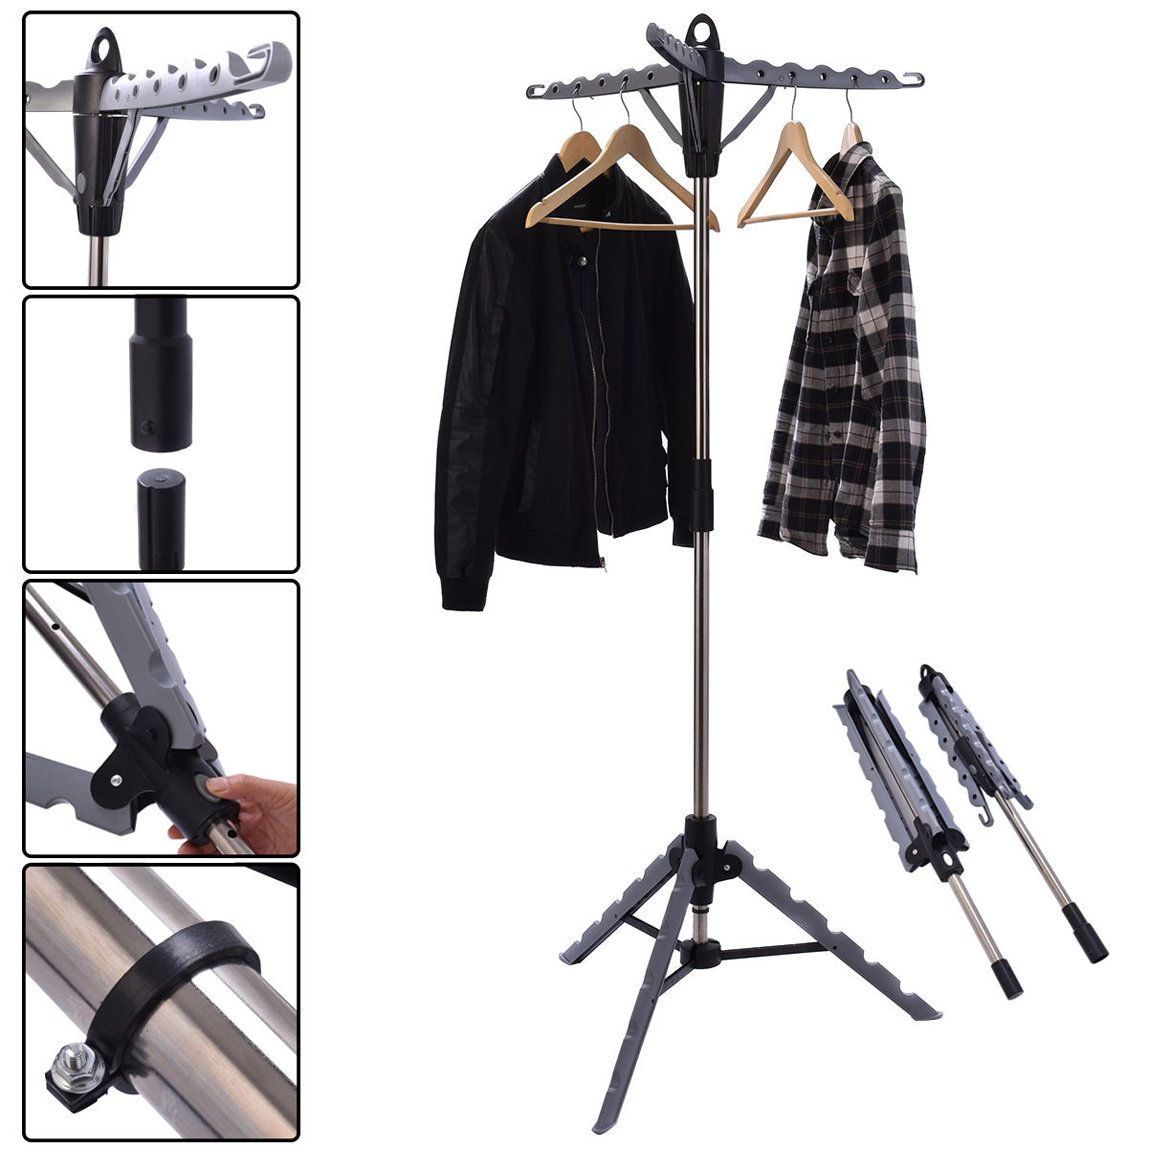 Clothes Hanger Drying Portable Multifunctional Retractable Laundry Racks Tripod by TF-Godung (Image #1)